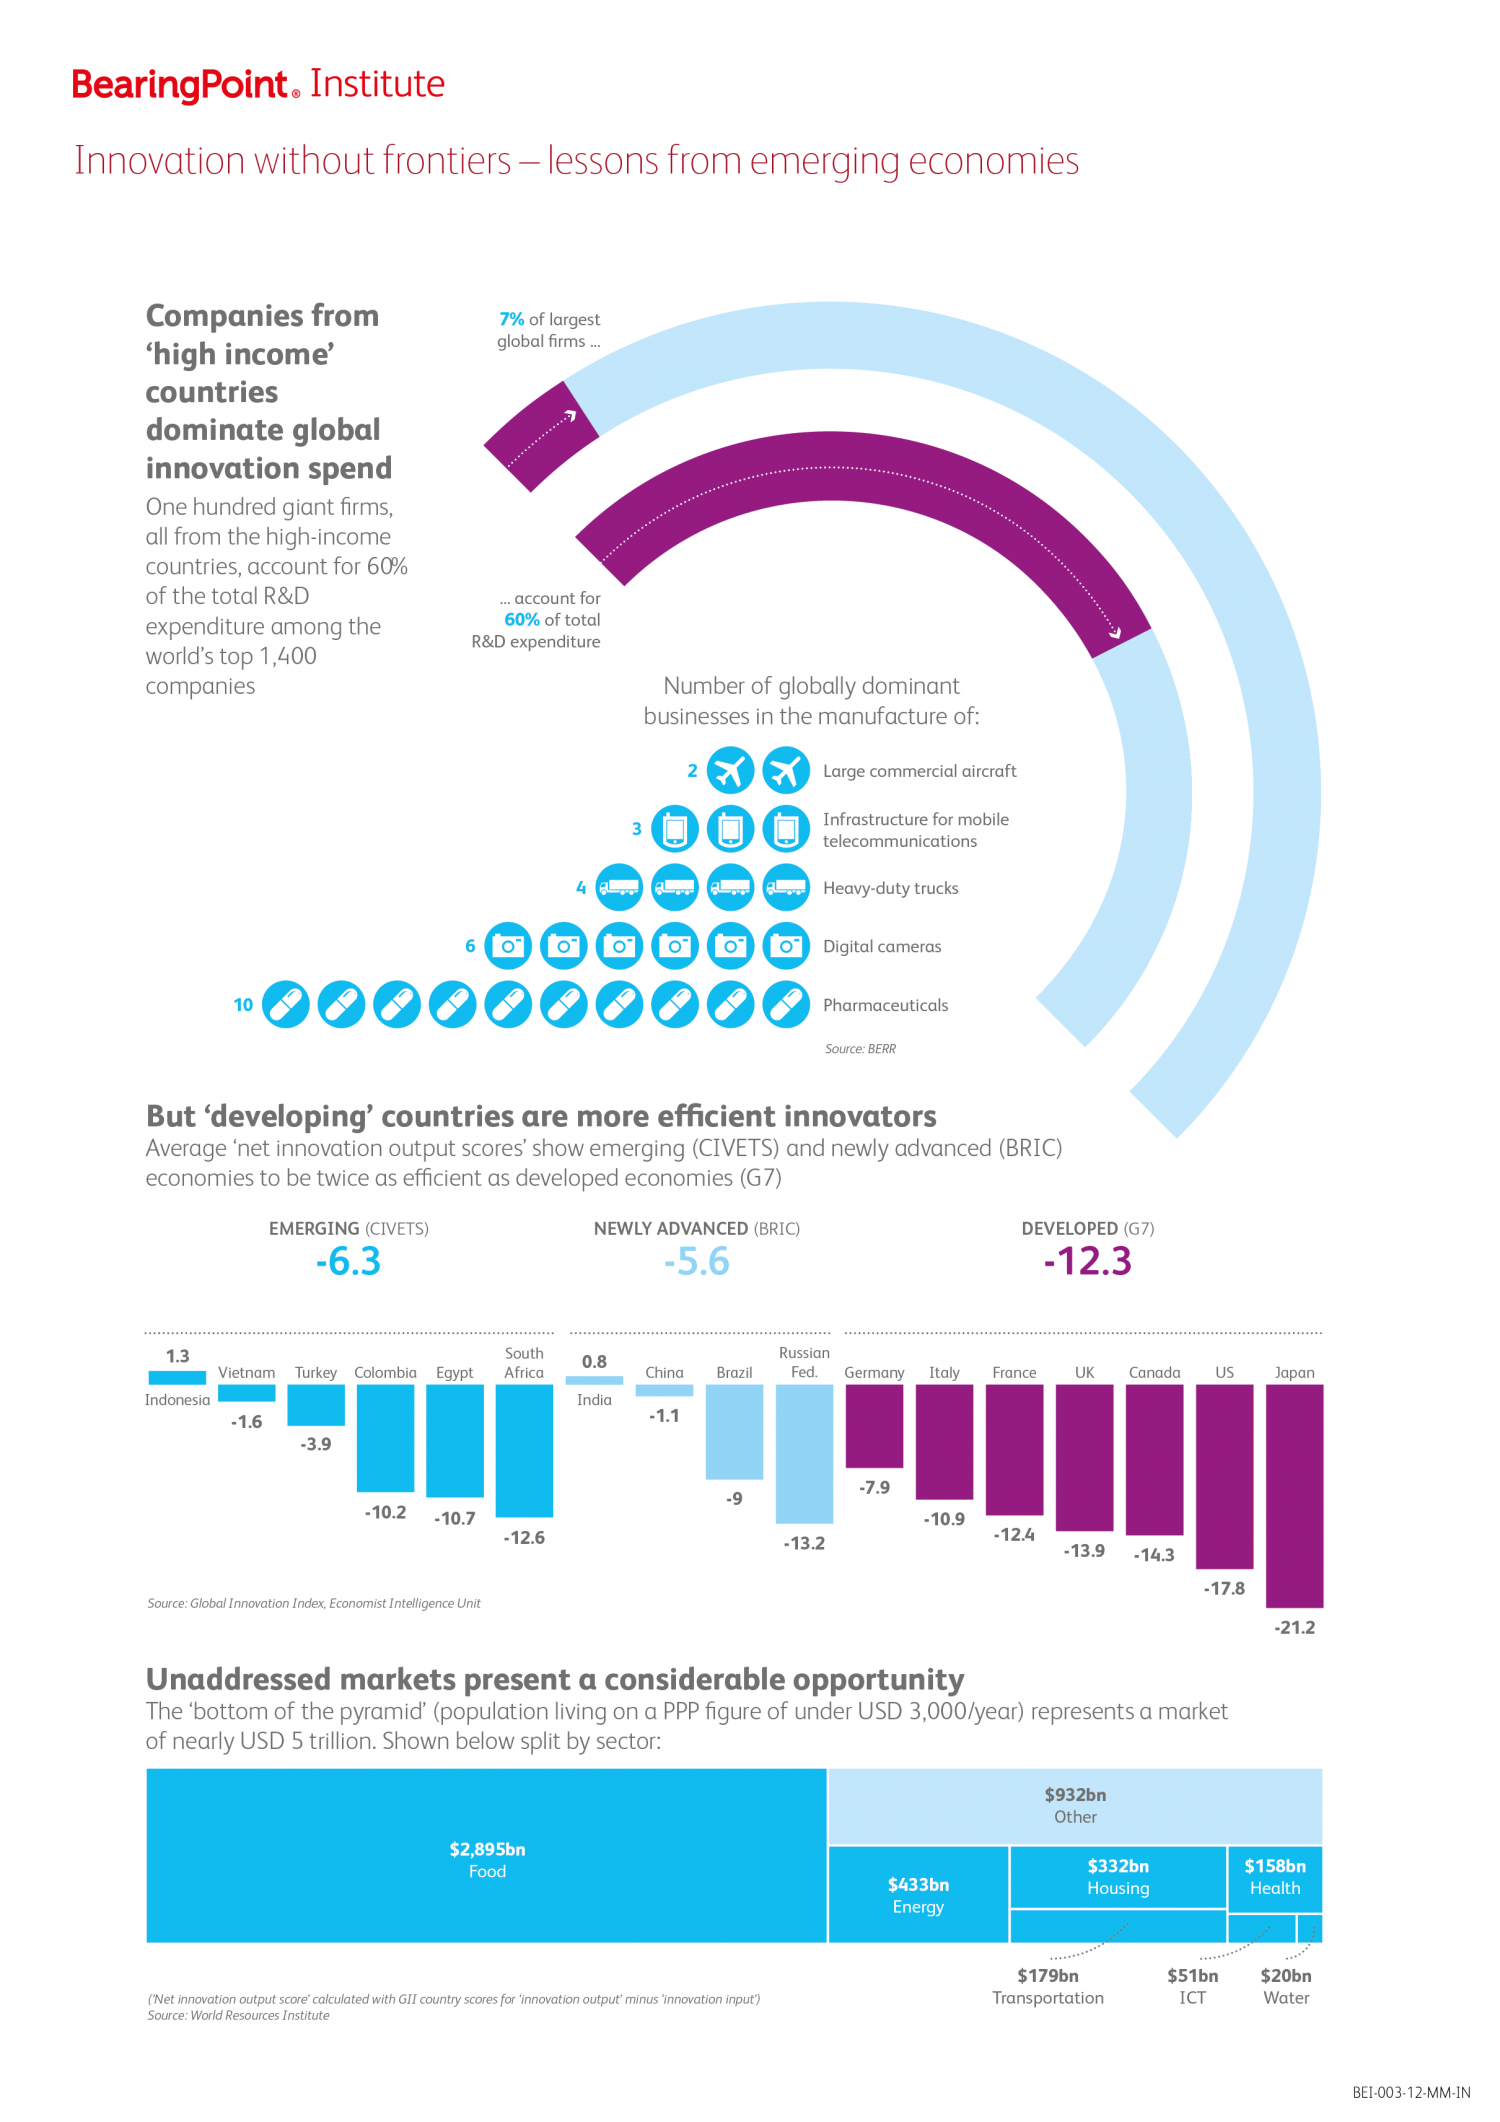 Innovation without frontiers - lessons from emerging economies Infographic